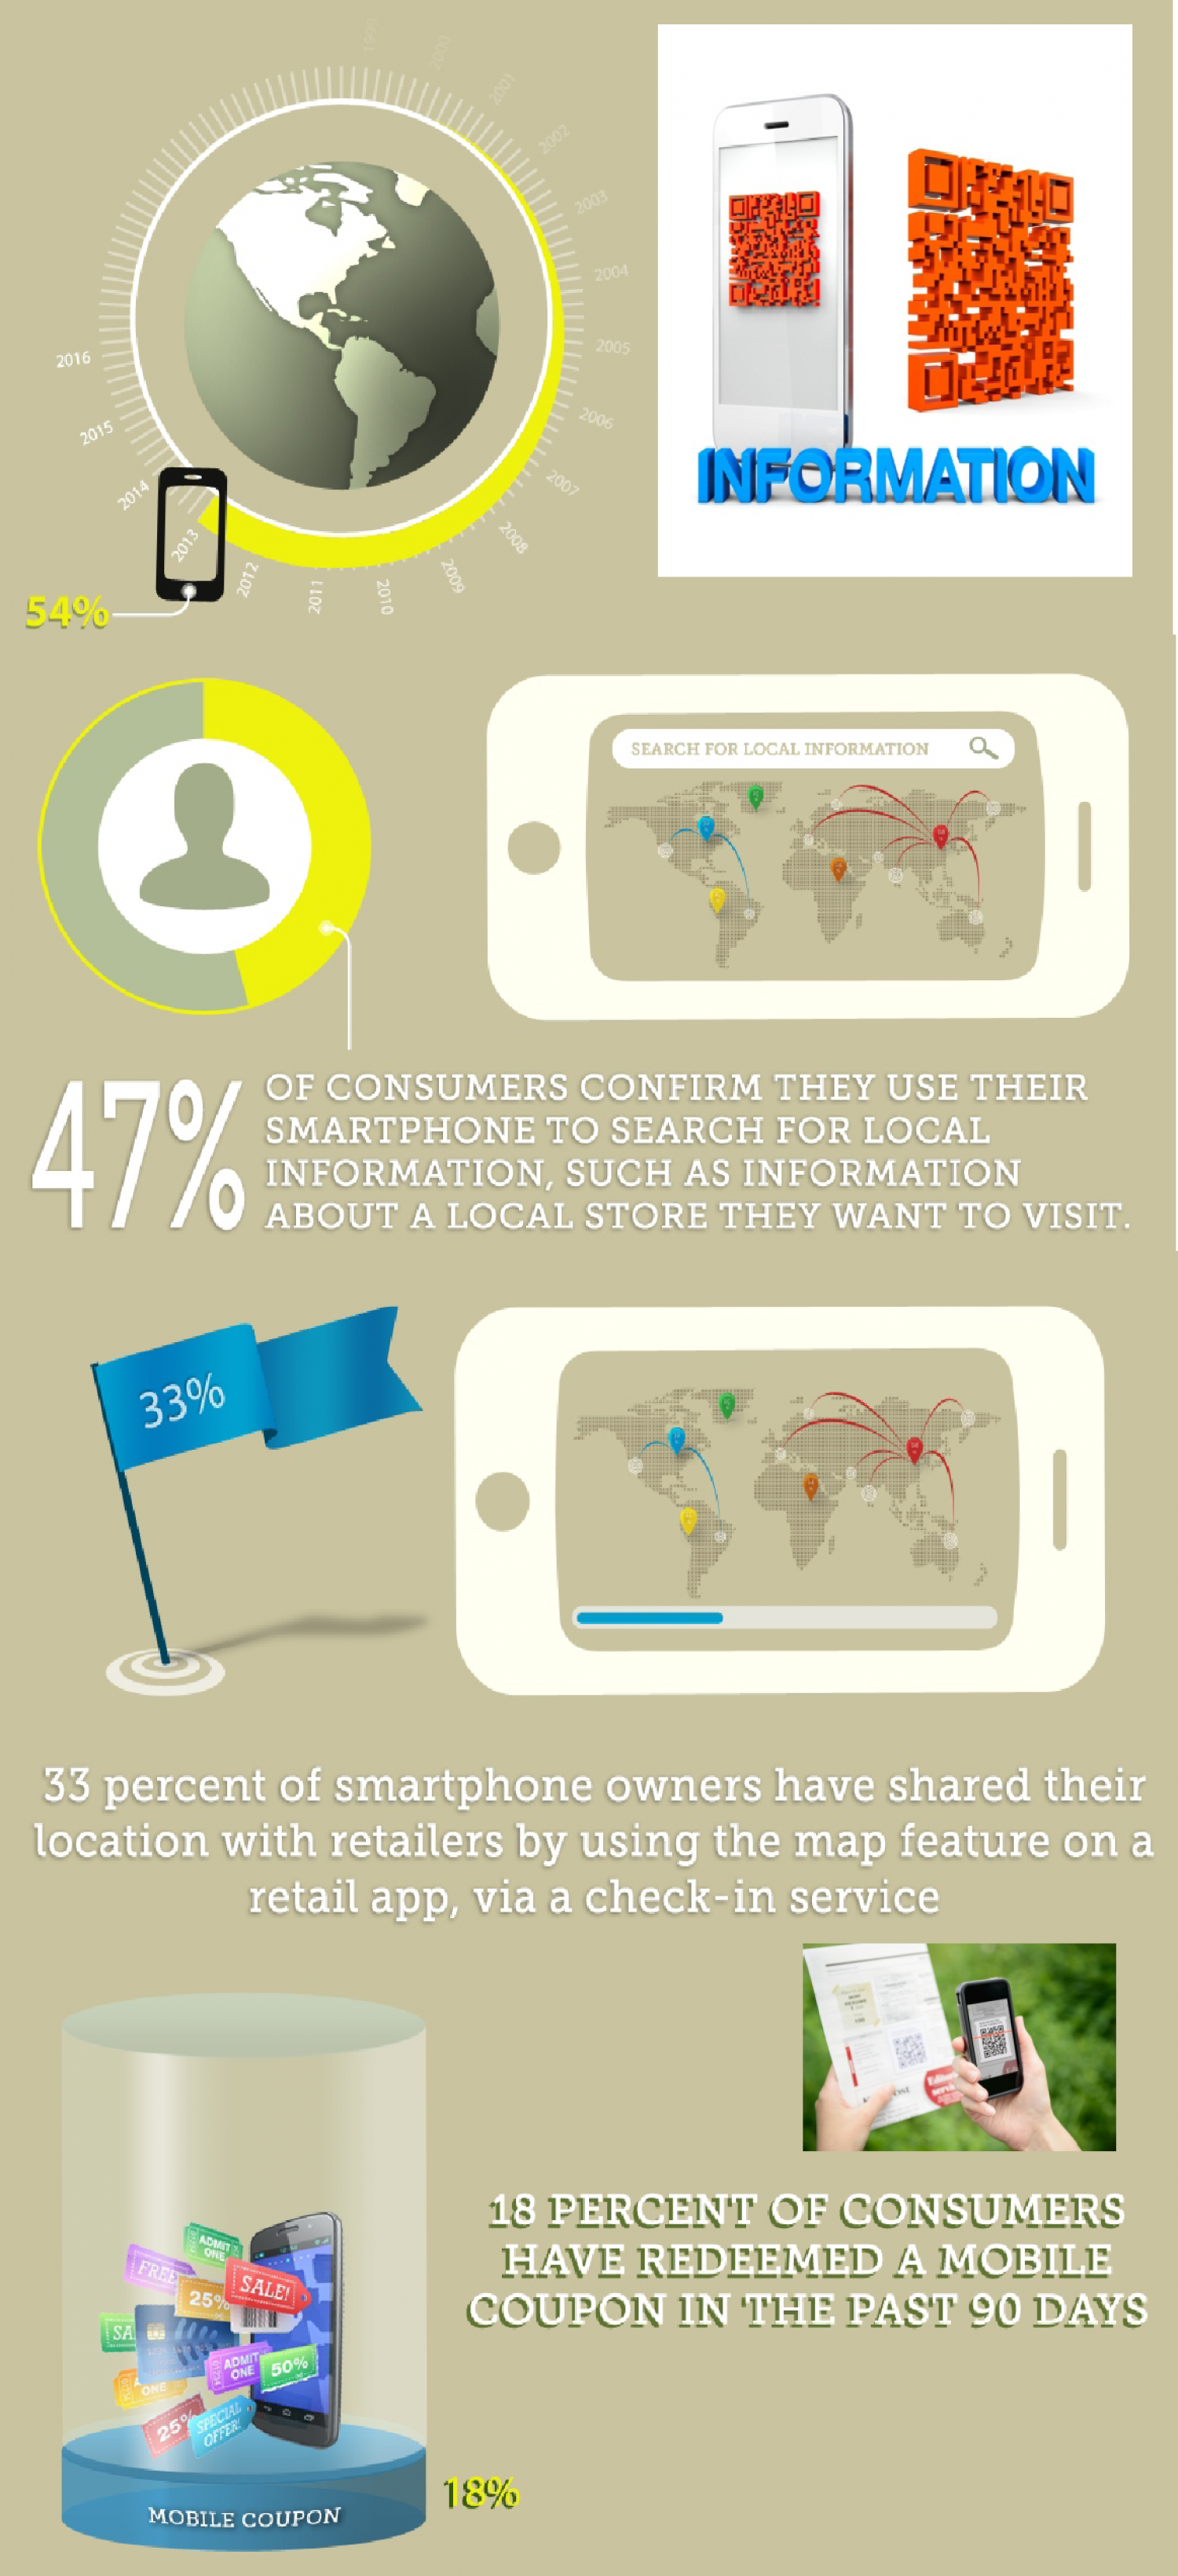 Mobile Geolocation  Coupon Redemption  Infographic